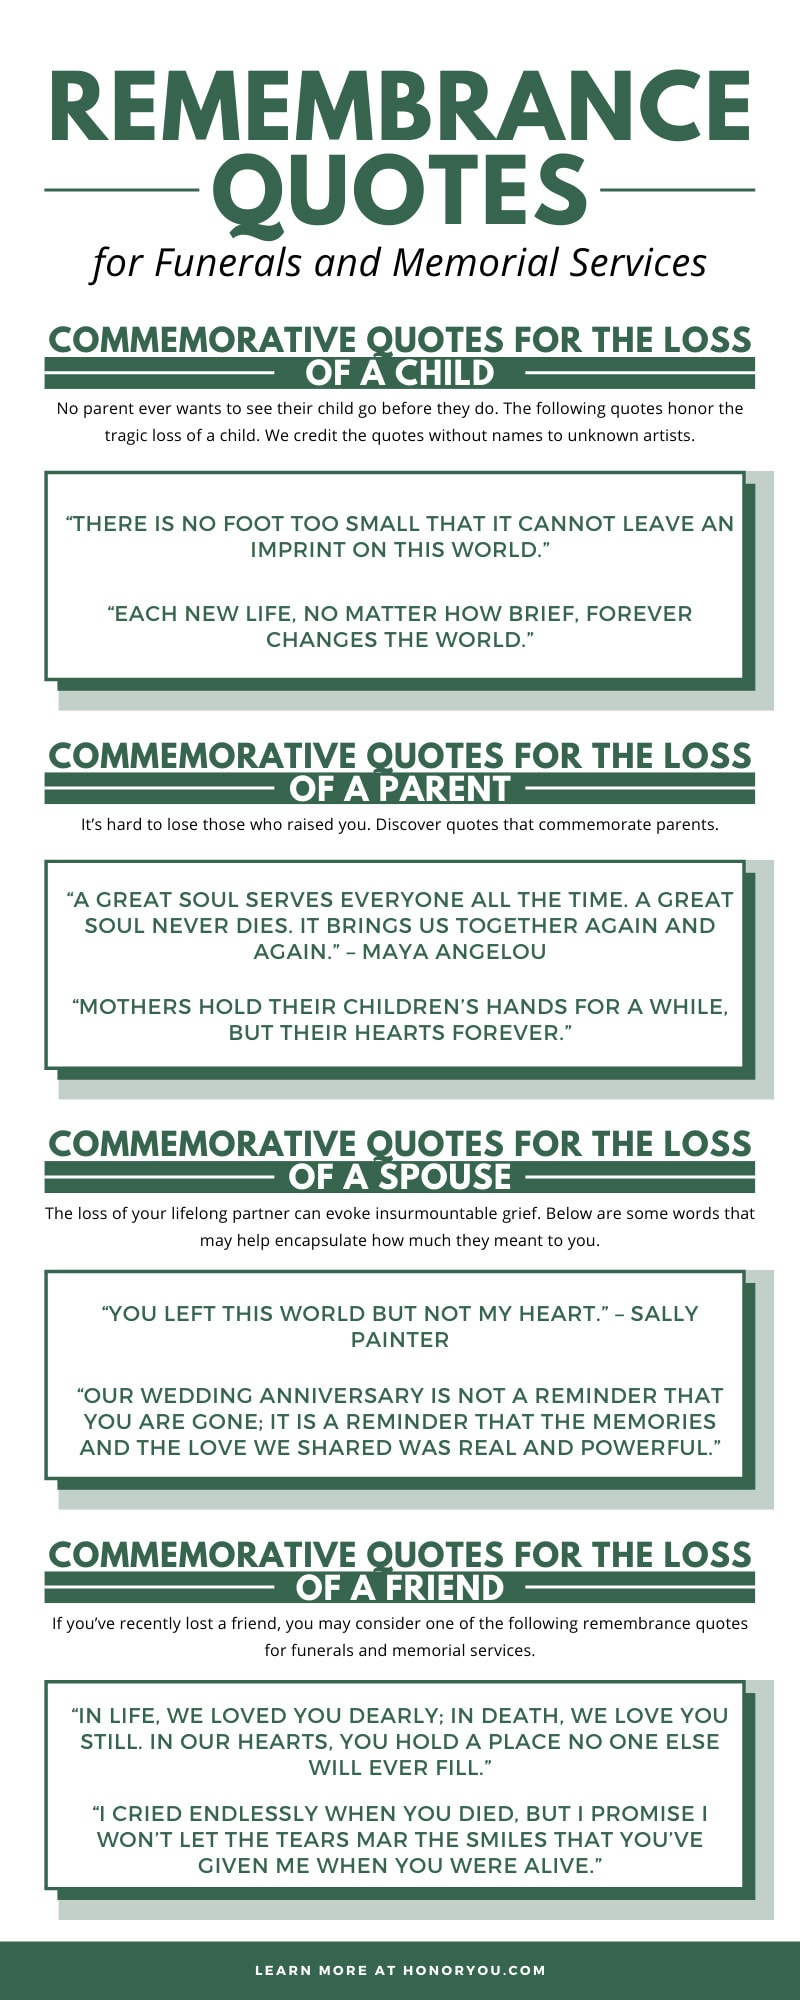 Remembrance Quotes for Funerals and Memorial Services